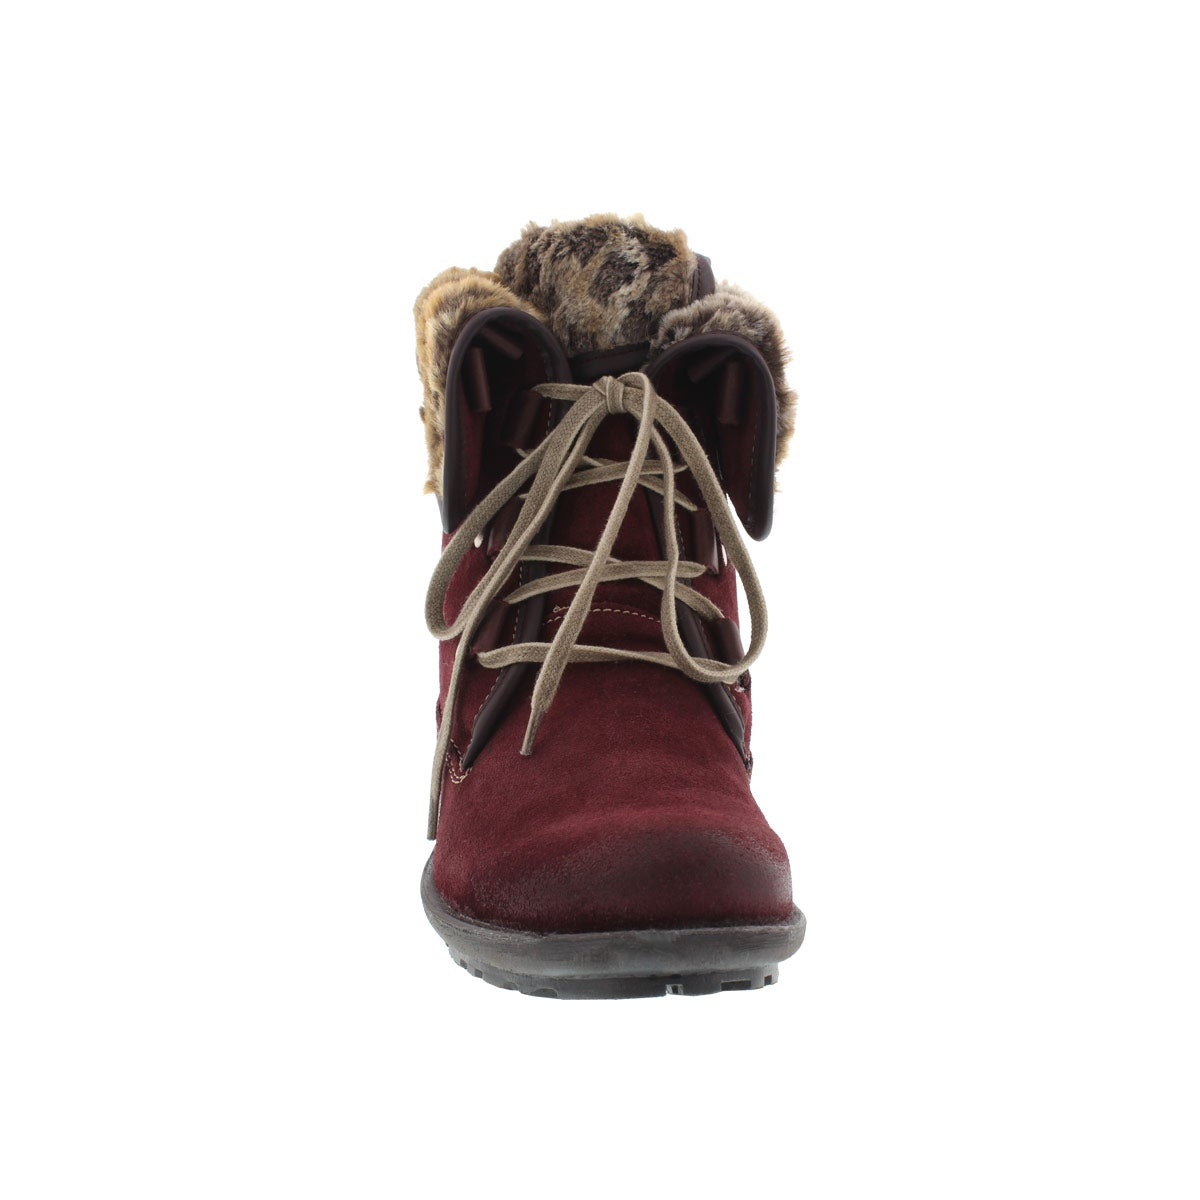 Lds Sandra 04 sangria lace-up boot